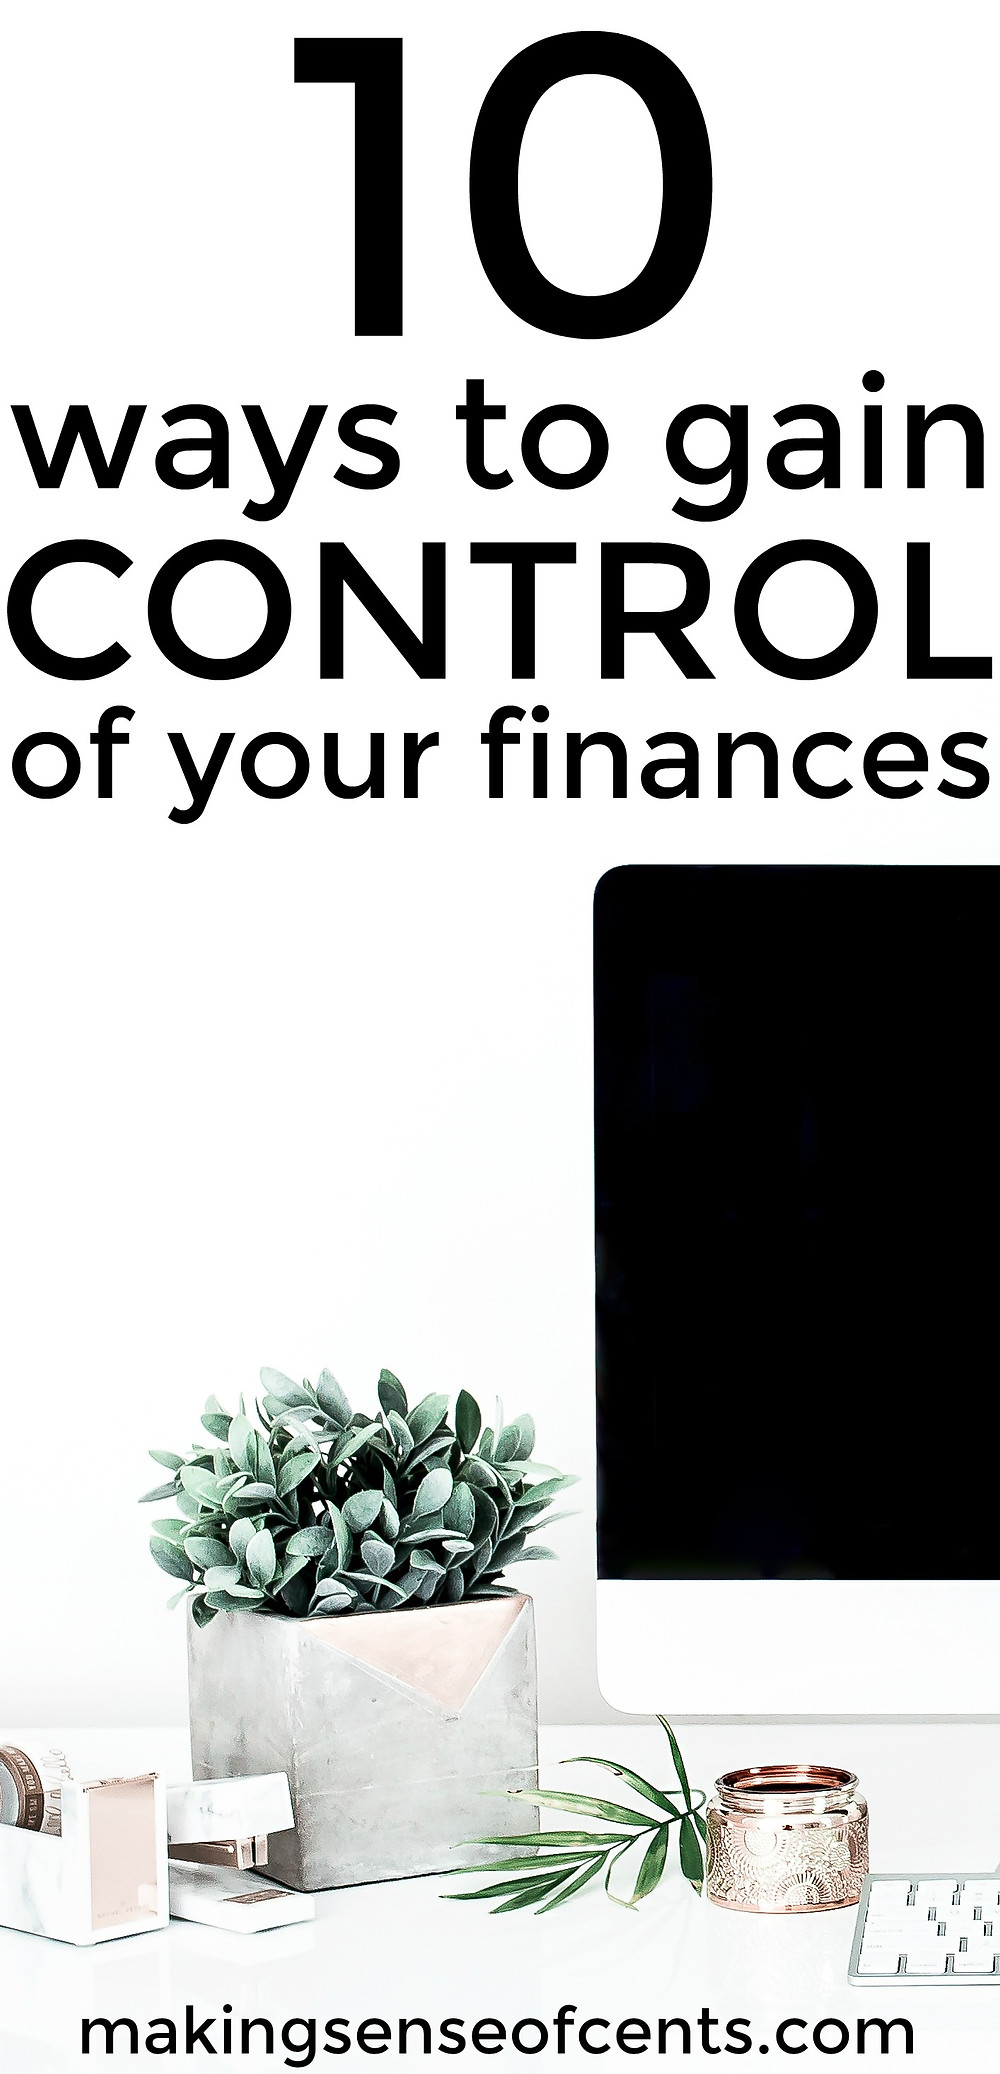 Find out how to gain control of your finances with these helpful tips. This is a great list!